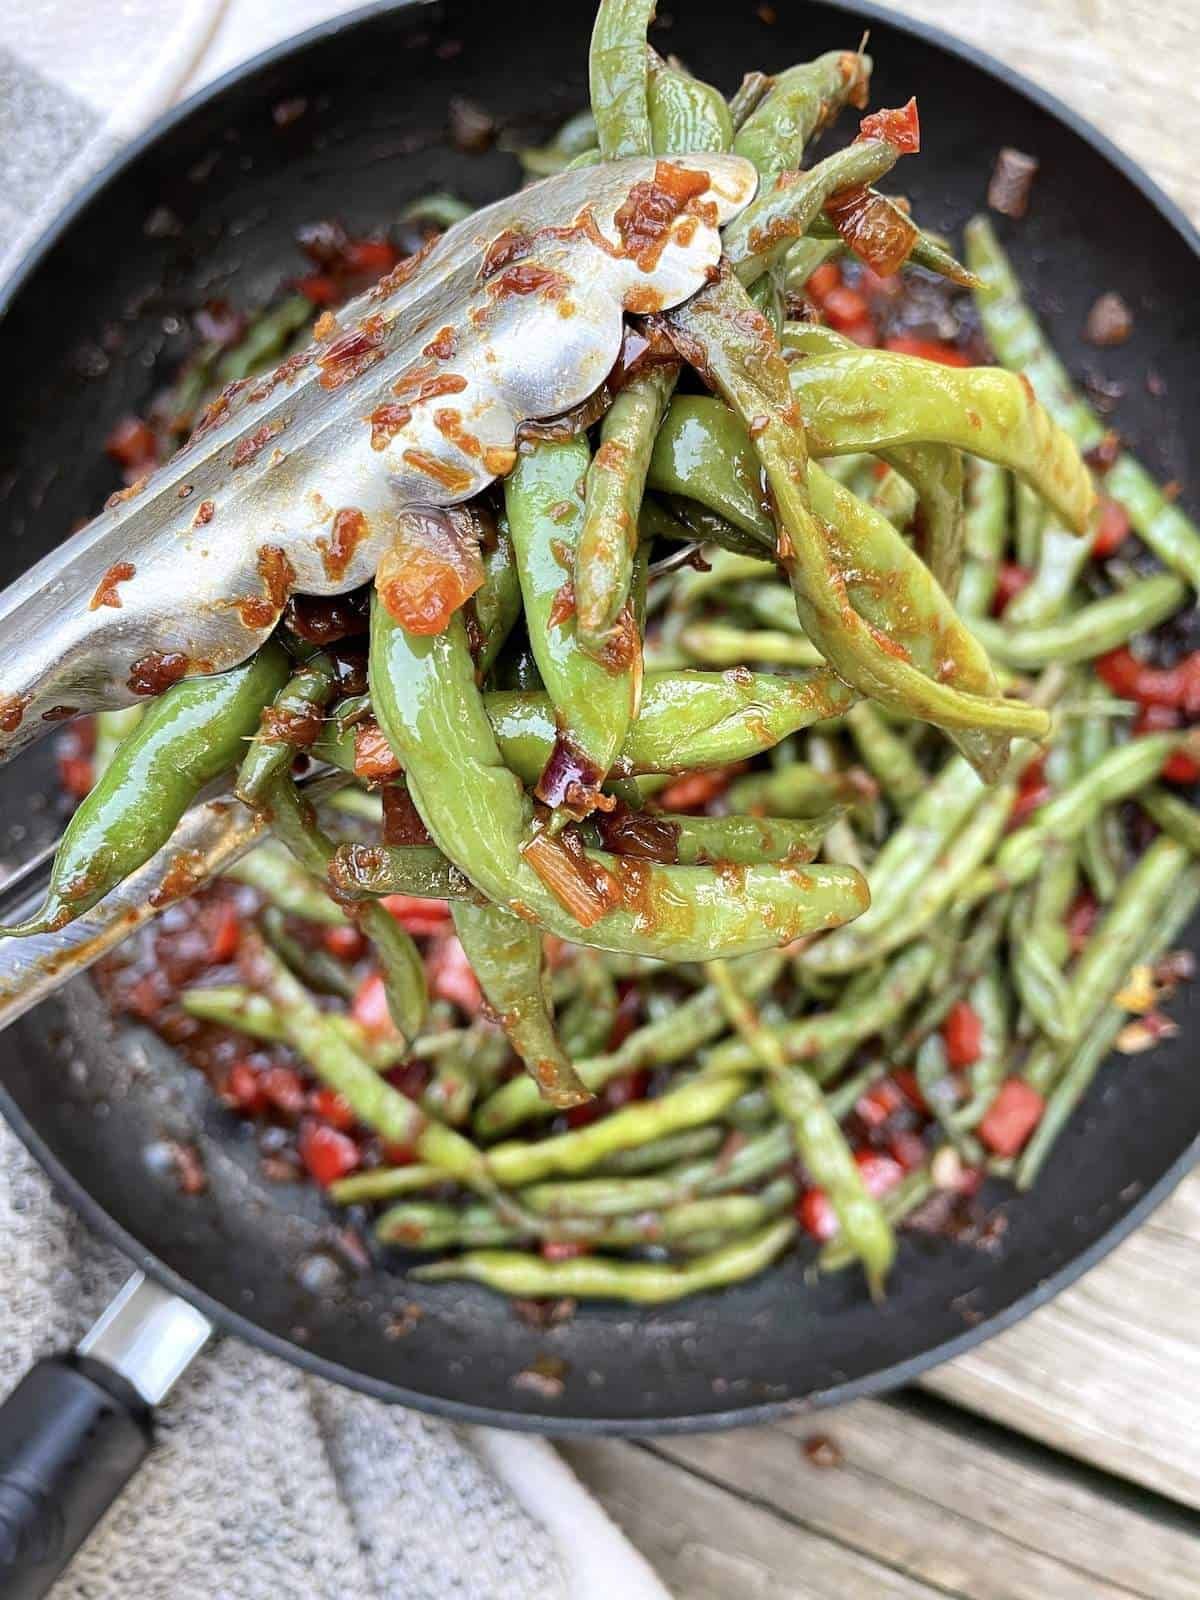 A pair of tongs holding sautéed green beans over a frying pan.